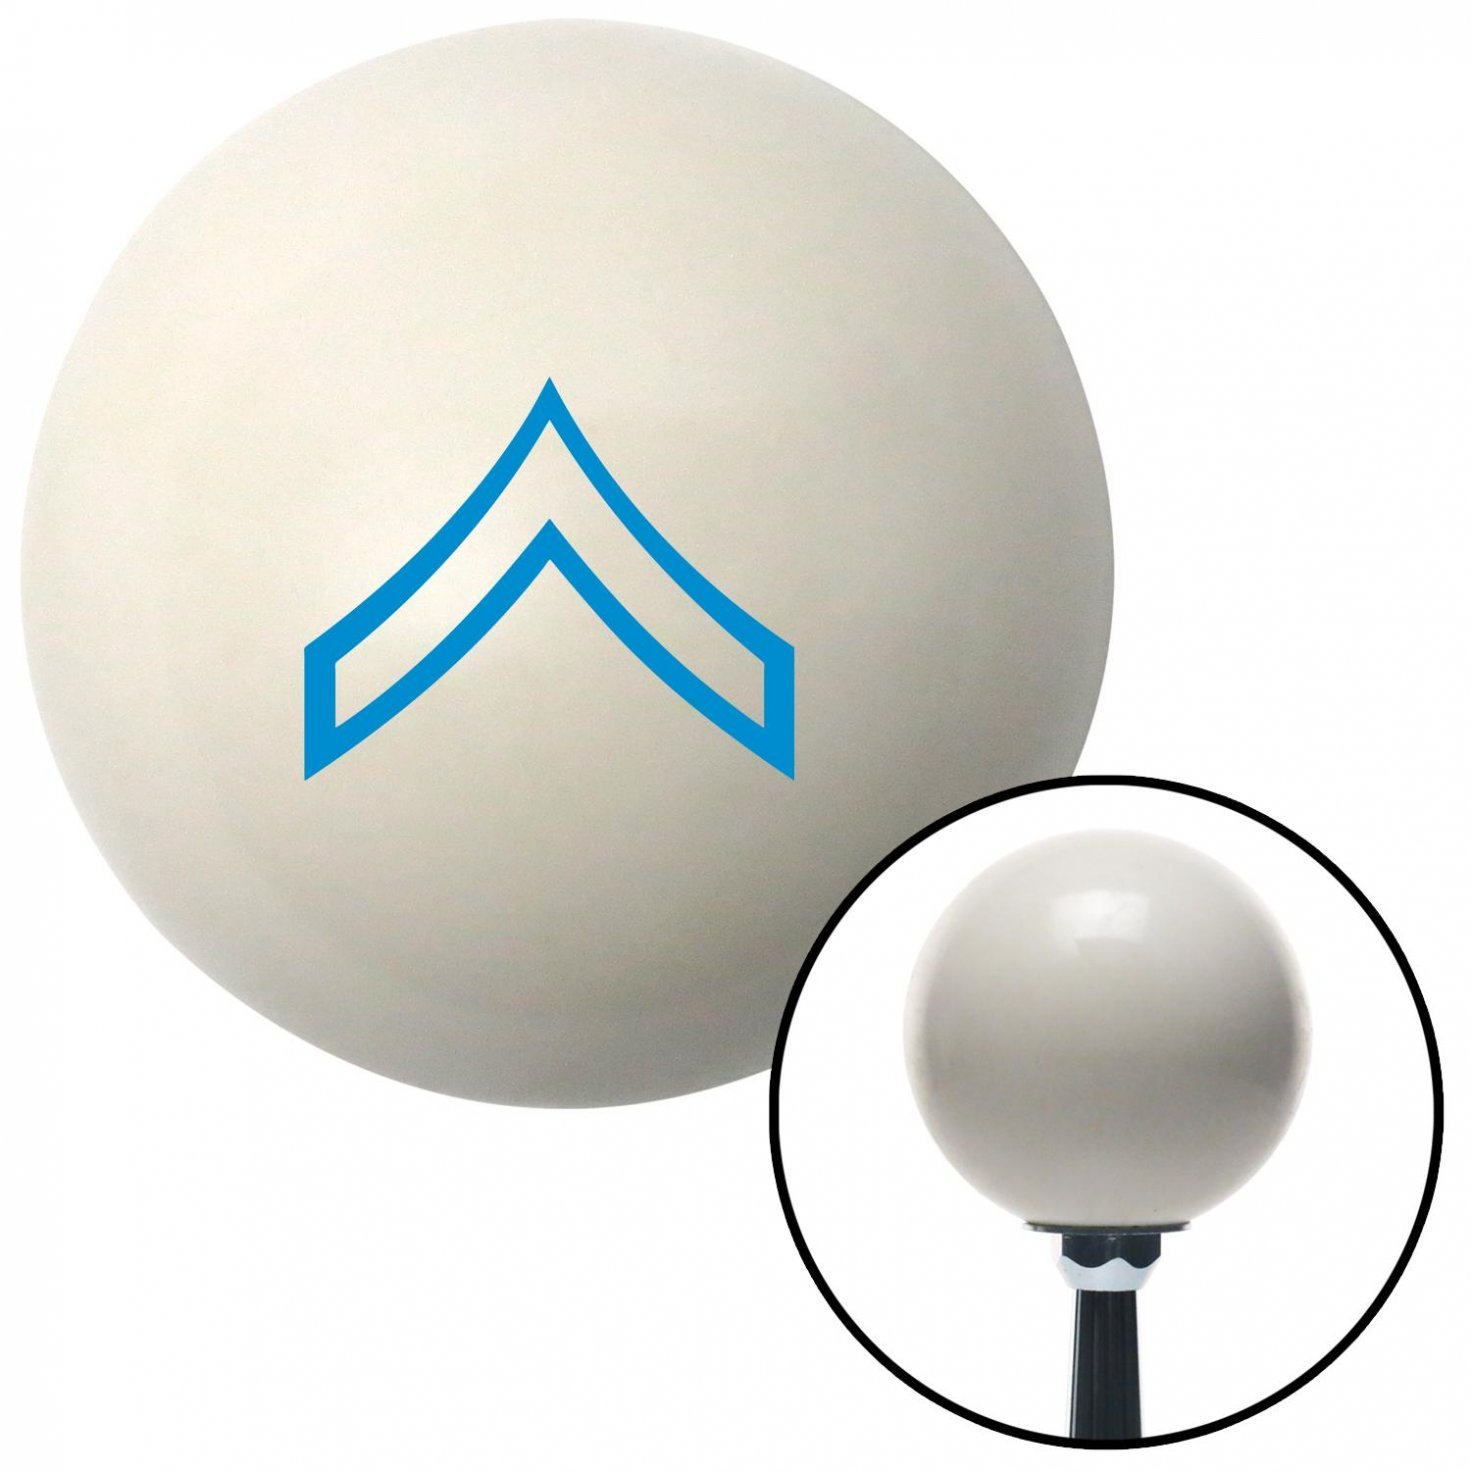 American Shifter 40683 Ivory Shift Knob with 16mm x 1.5 Insert Blue 01 Private First Class